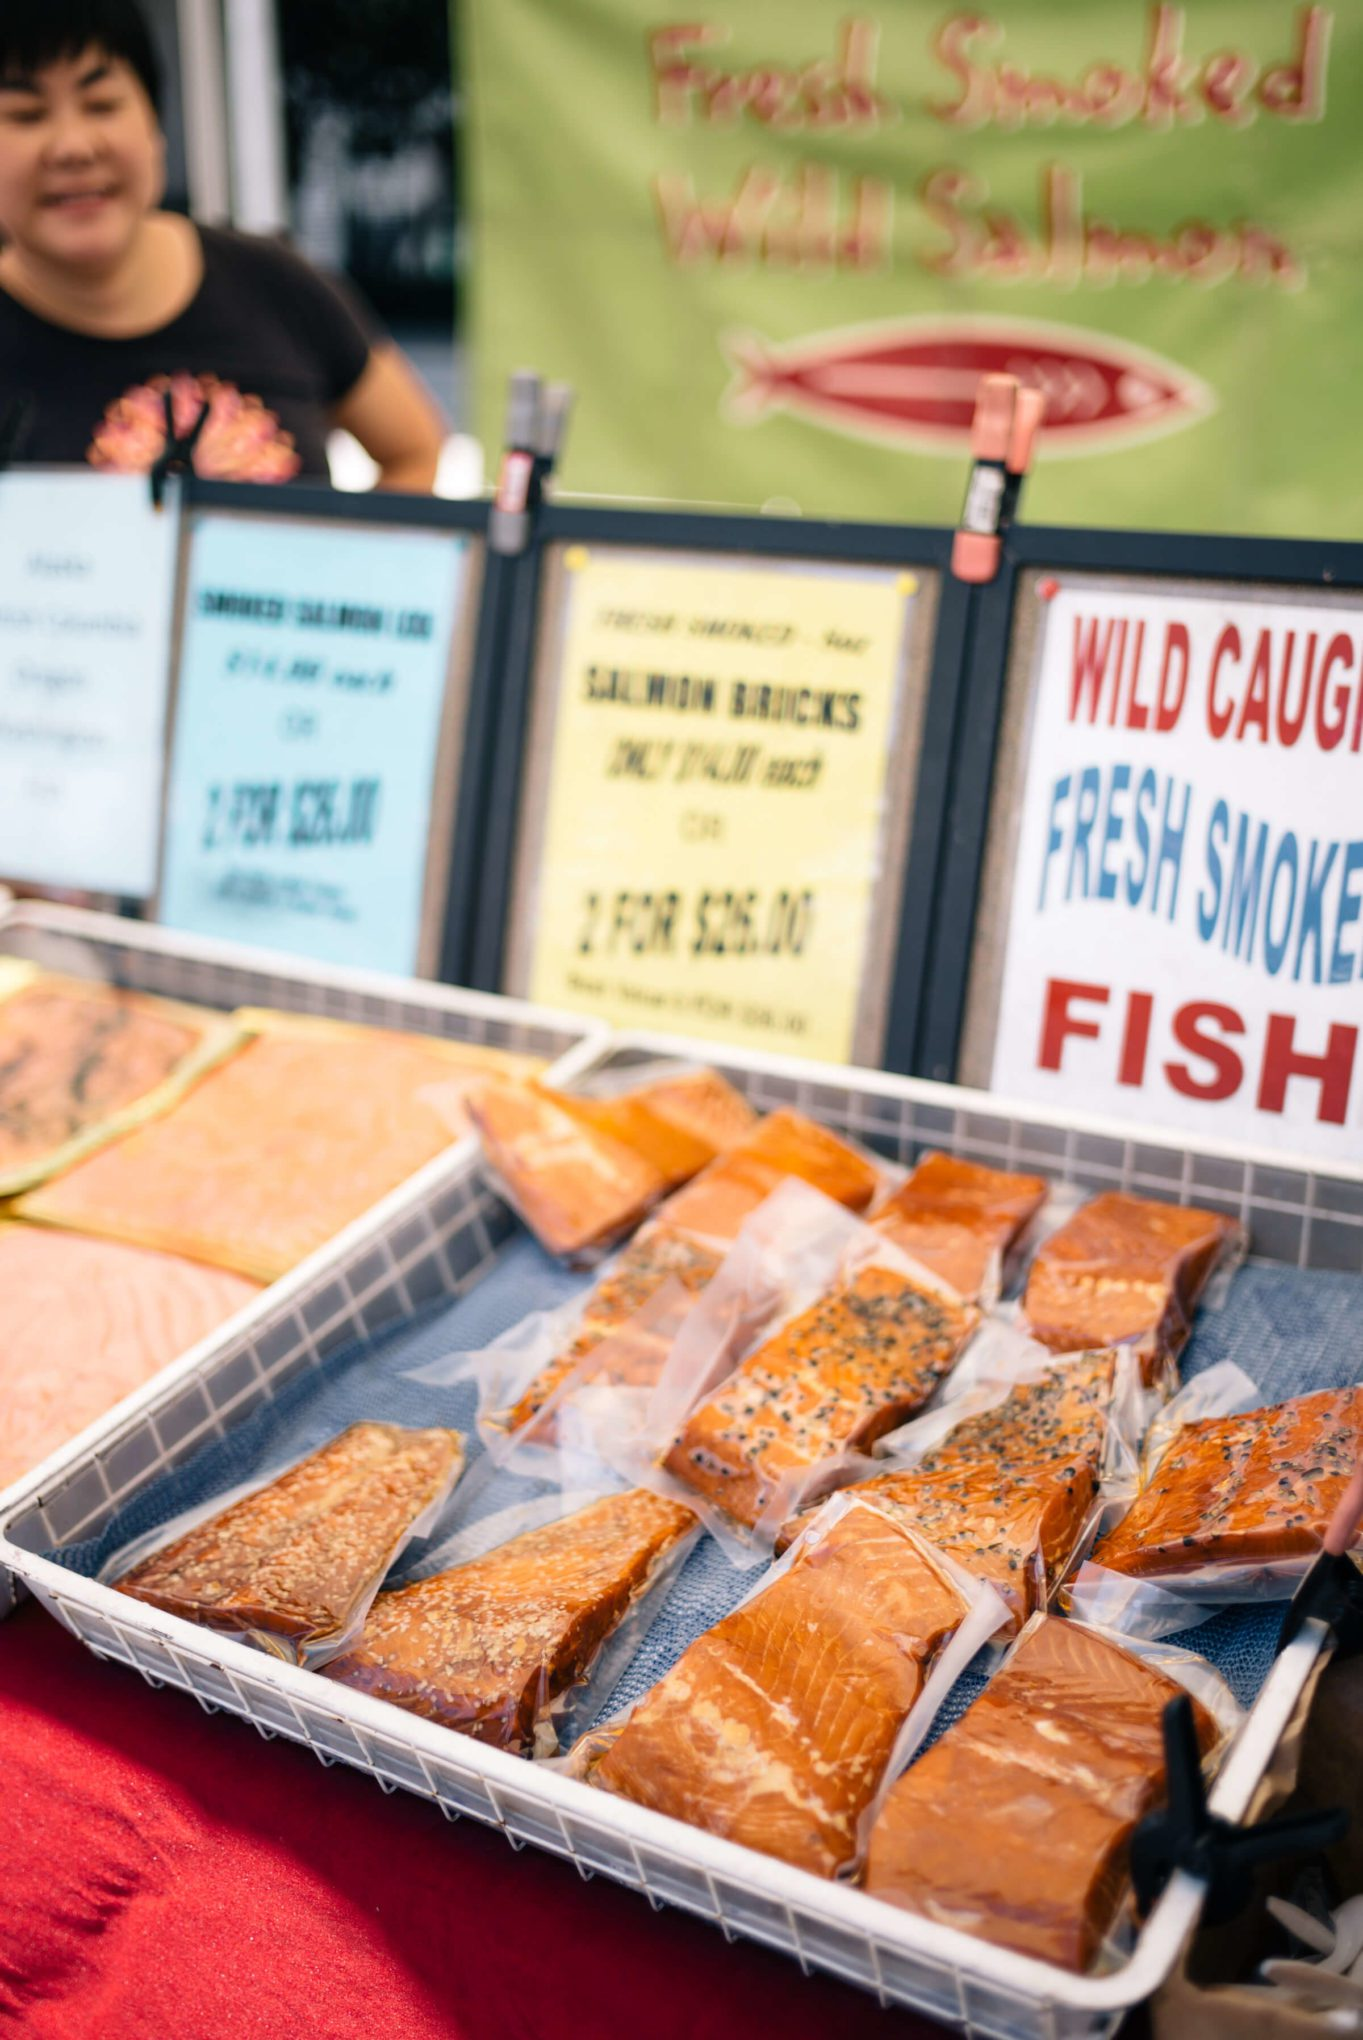 Mission Bay Farmers' Market at UCSF smoked salmon